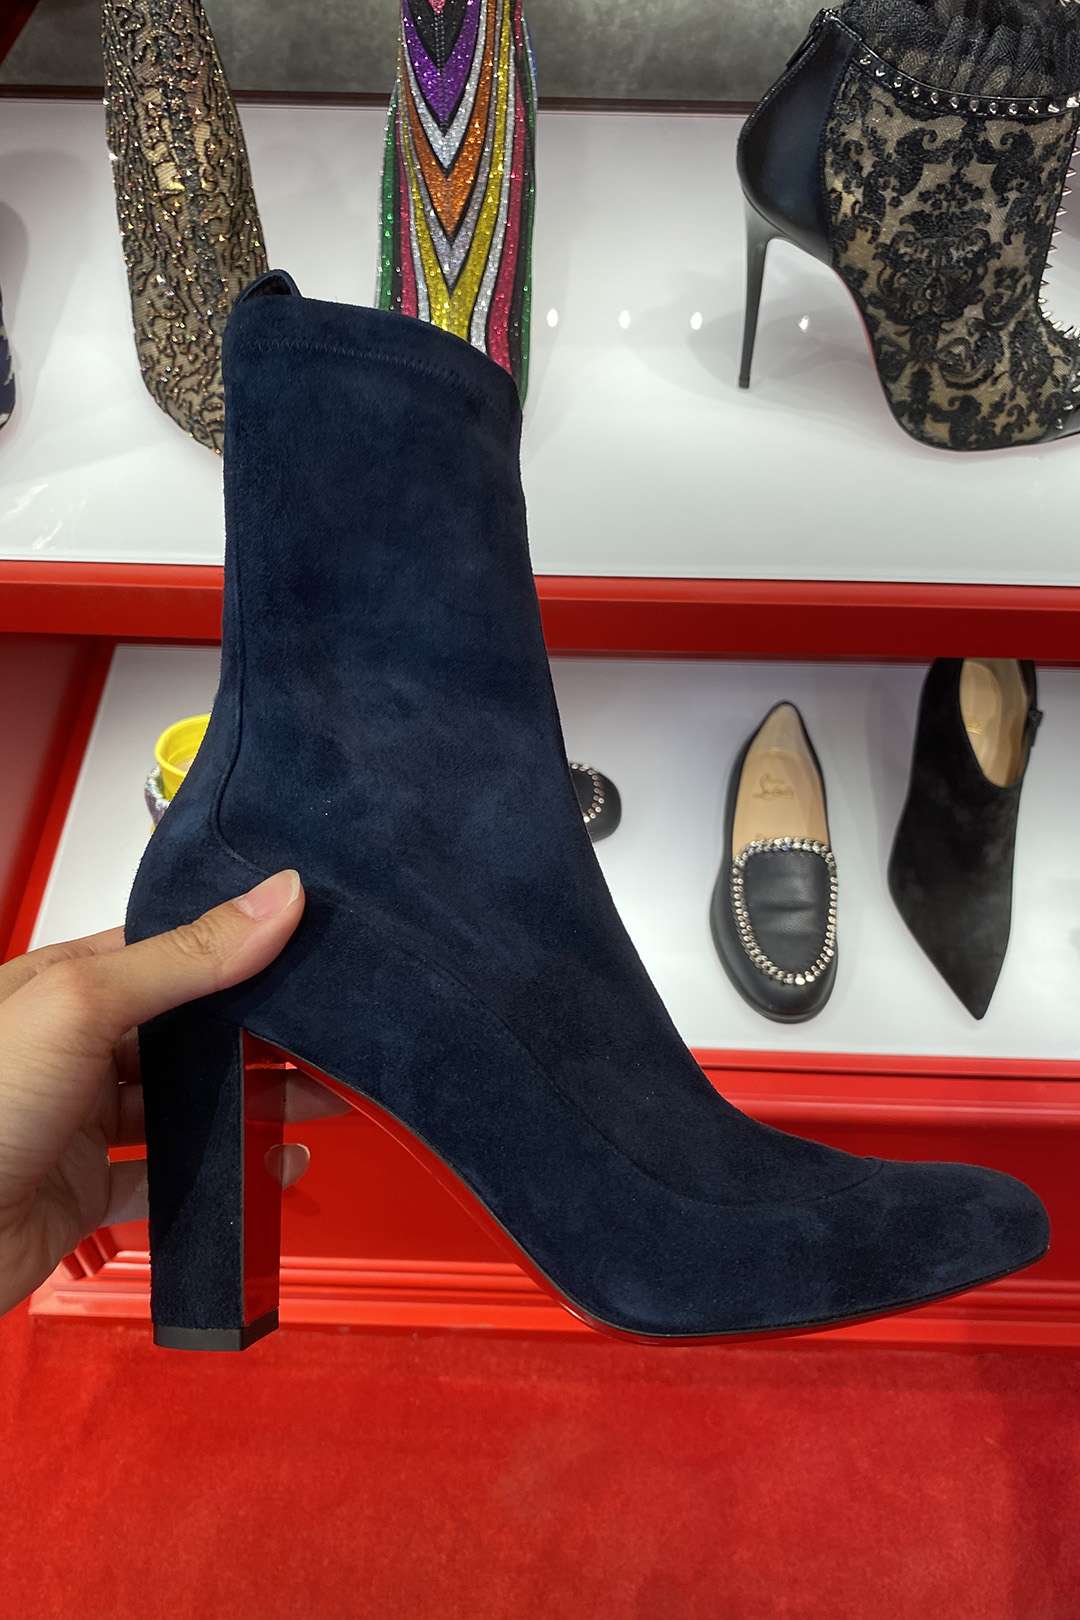 Christian Louboutin Outlet Boots (The Luxury Lowdown Blog)